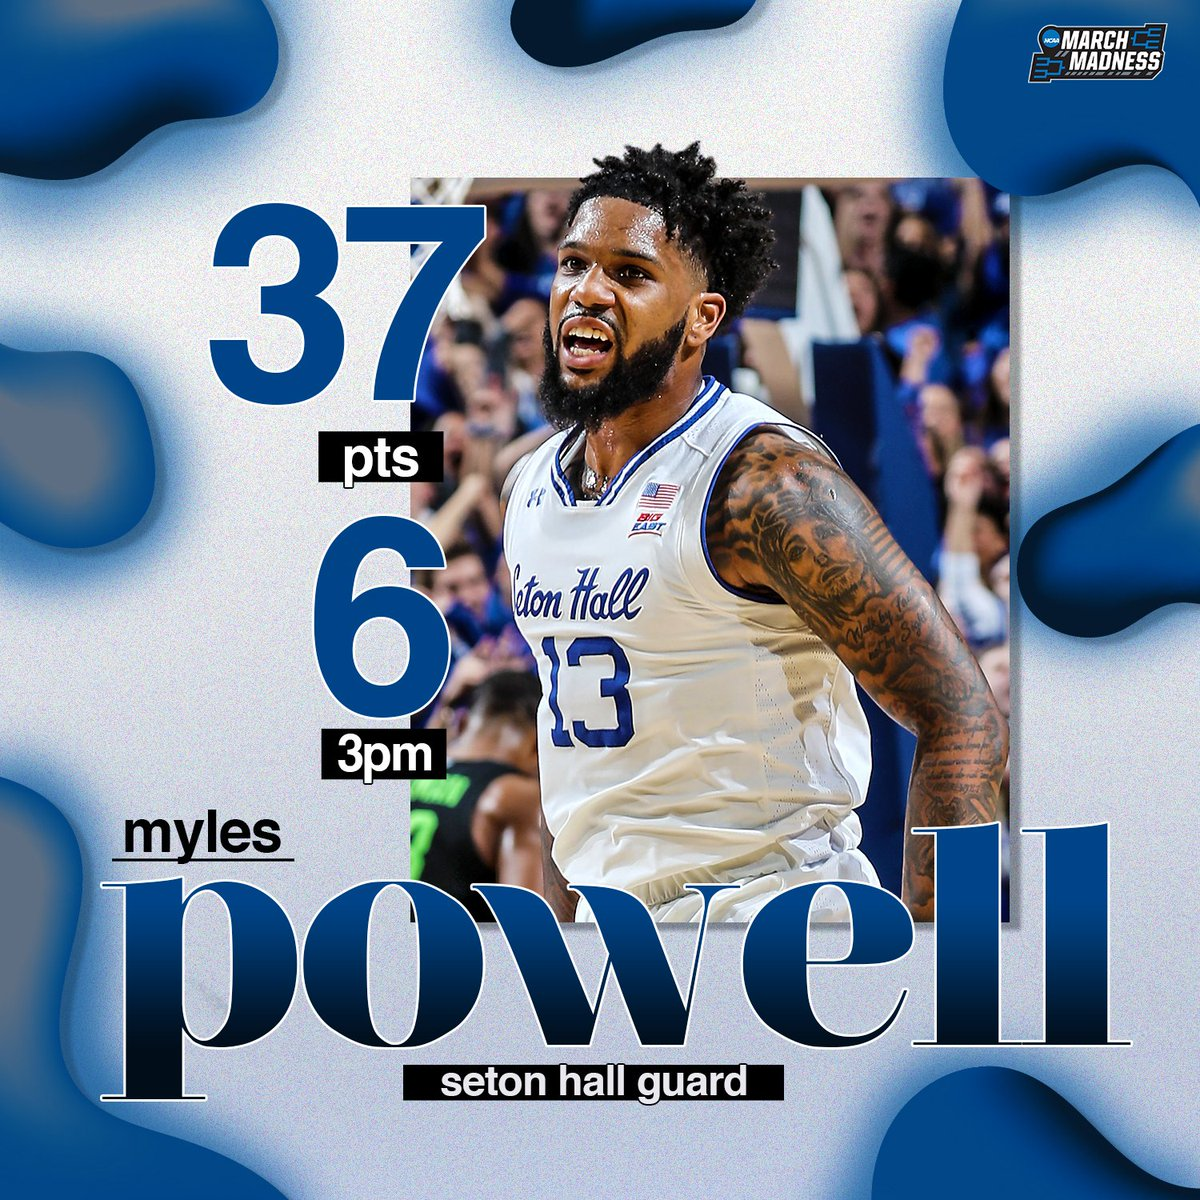 Despite the loss, Myles Powell left it all on the court.   #HALLin<br>http://pic.twitter.com/u8jvqfYY2S